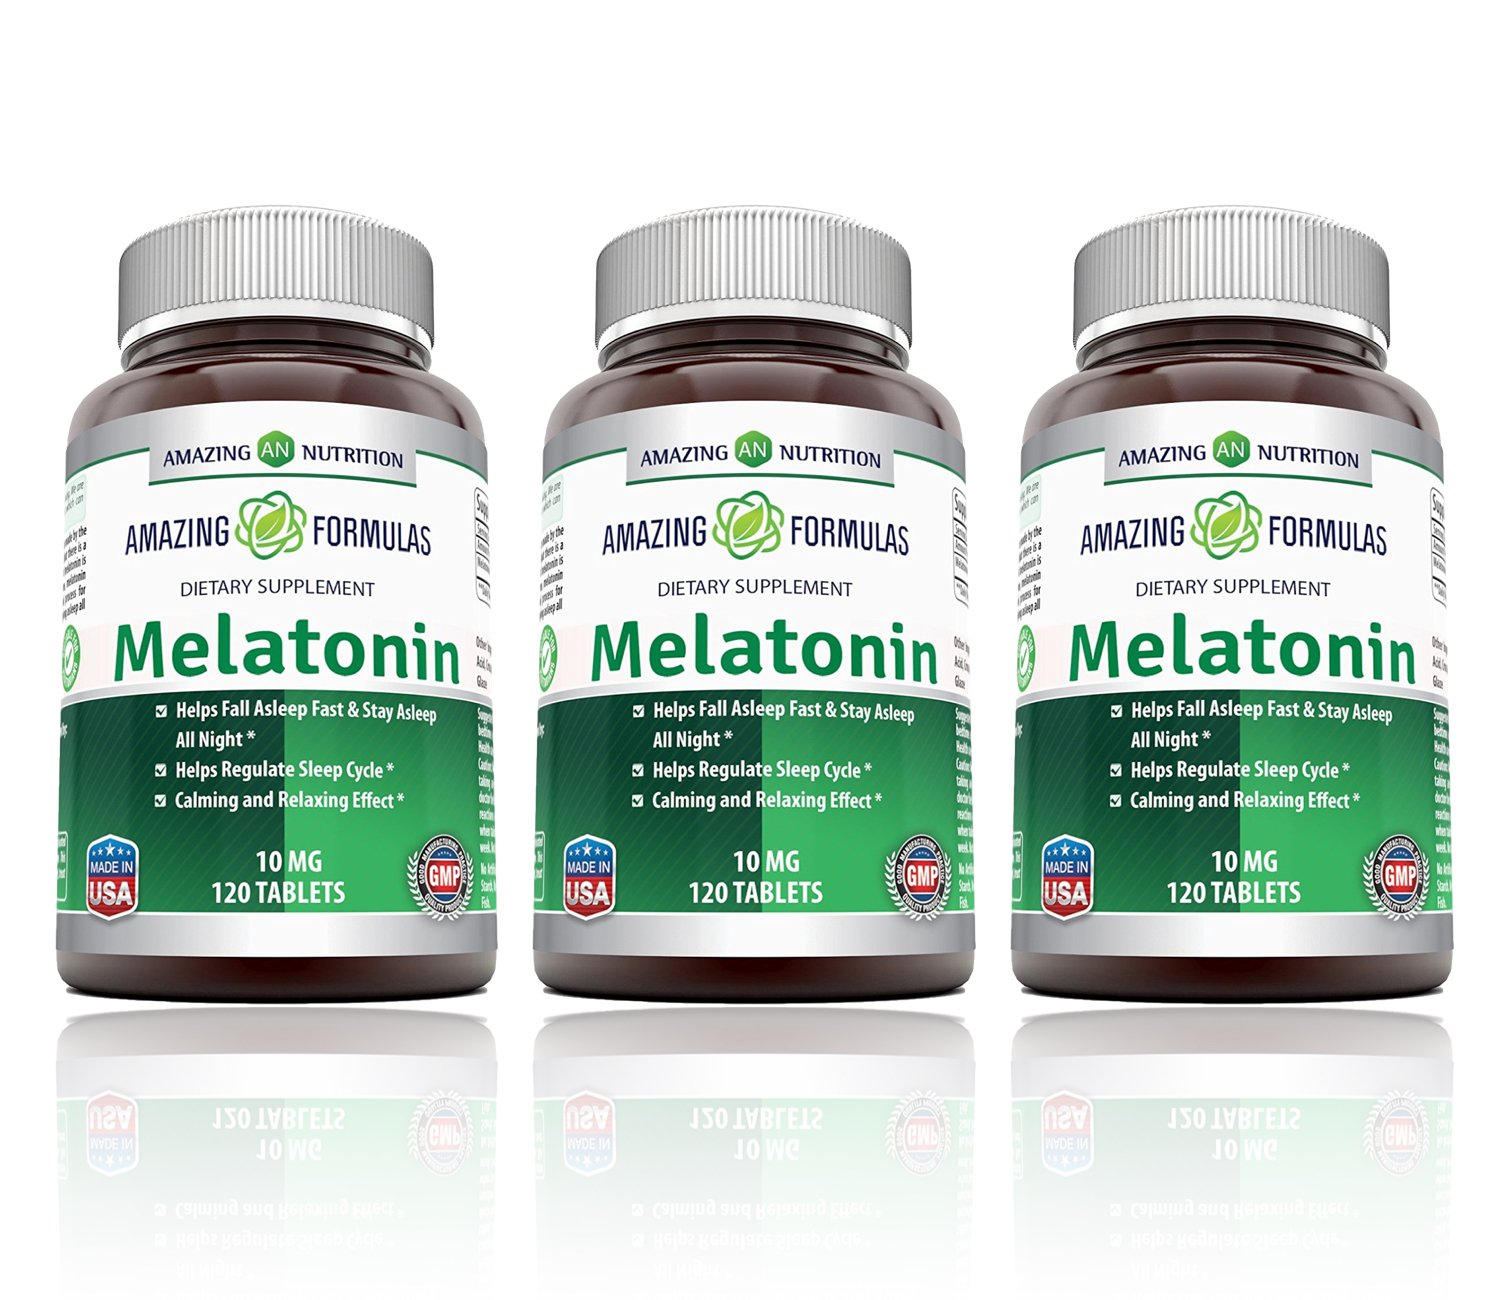 Amazing Nutrition Melatonin for Relaxation and Sleep, 10 Mg, Pack of 3, 120 Tablets Each